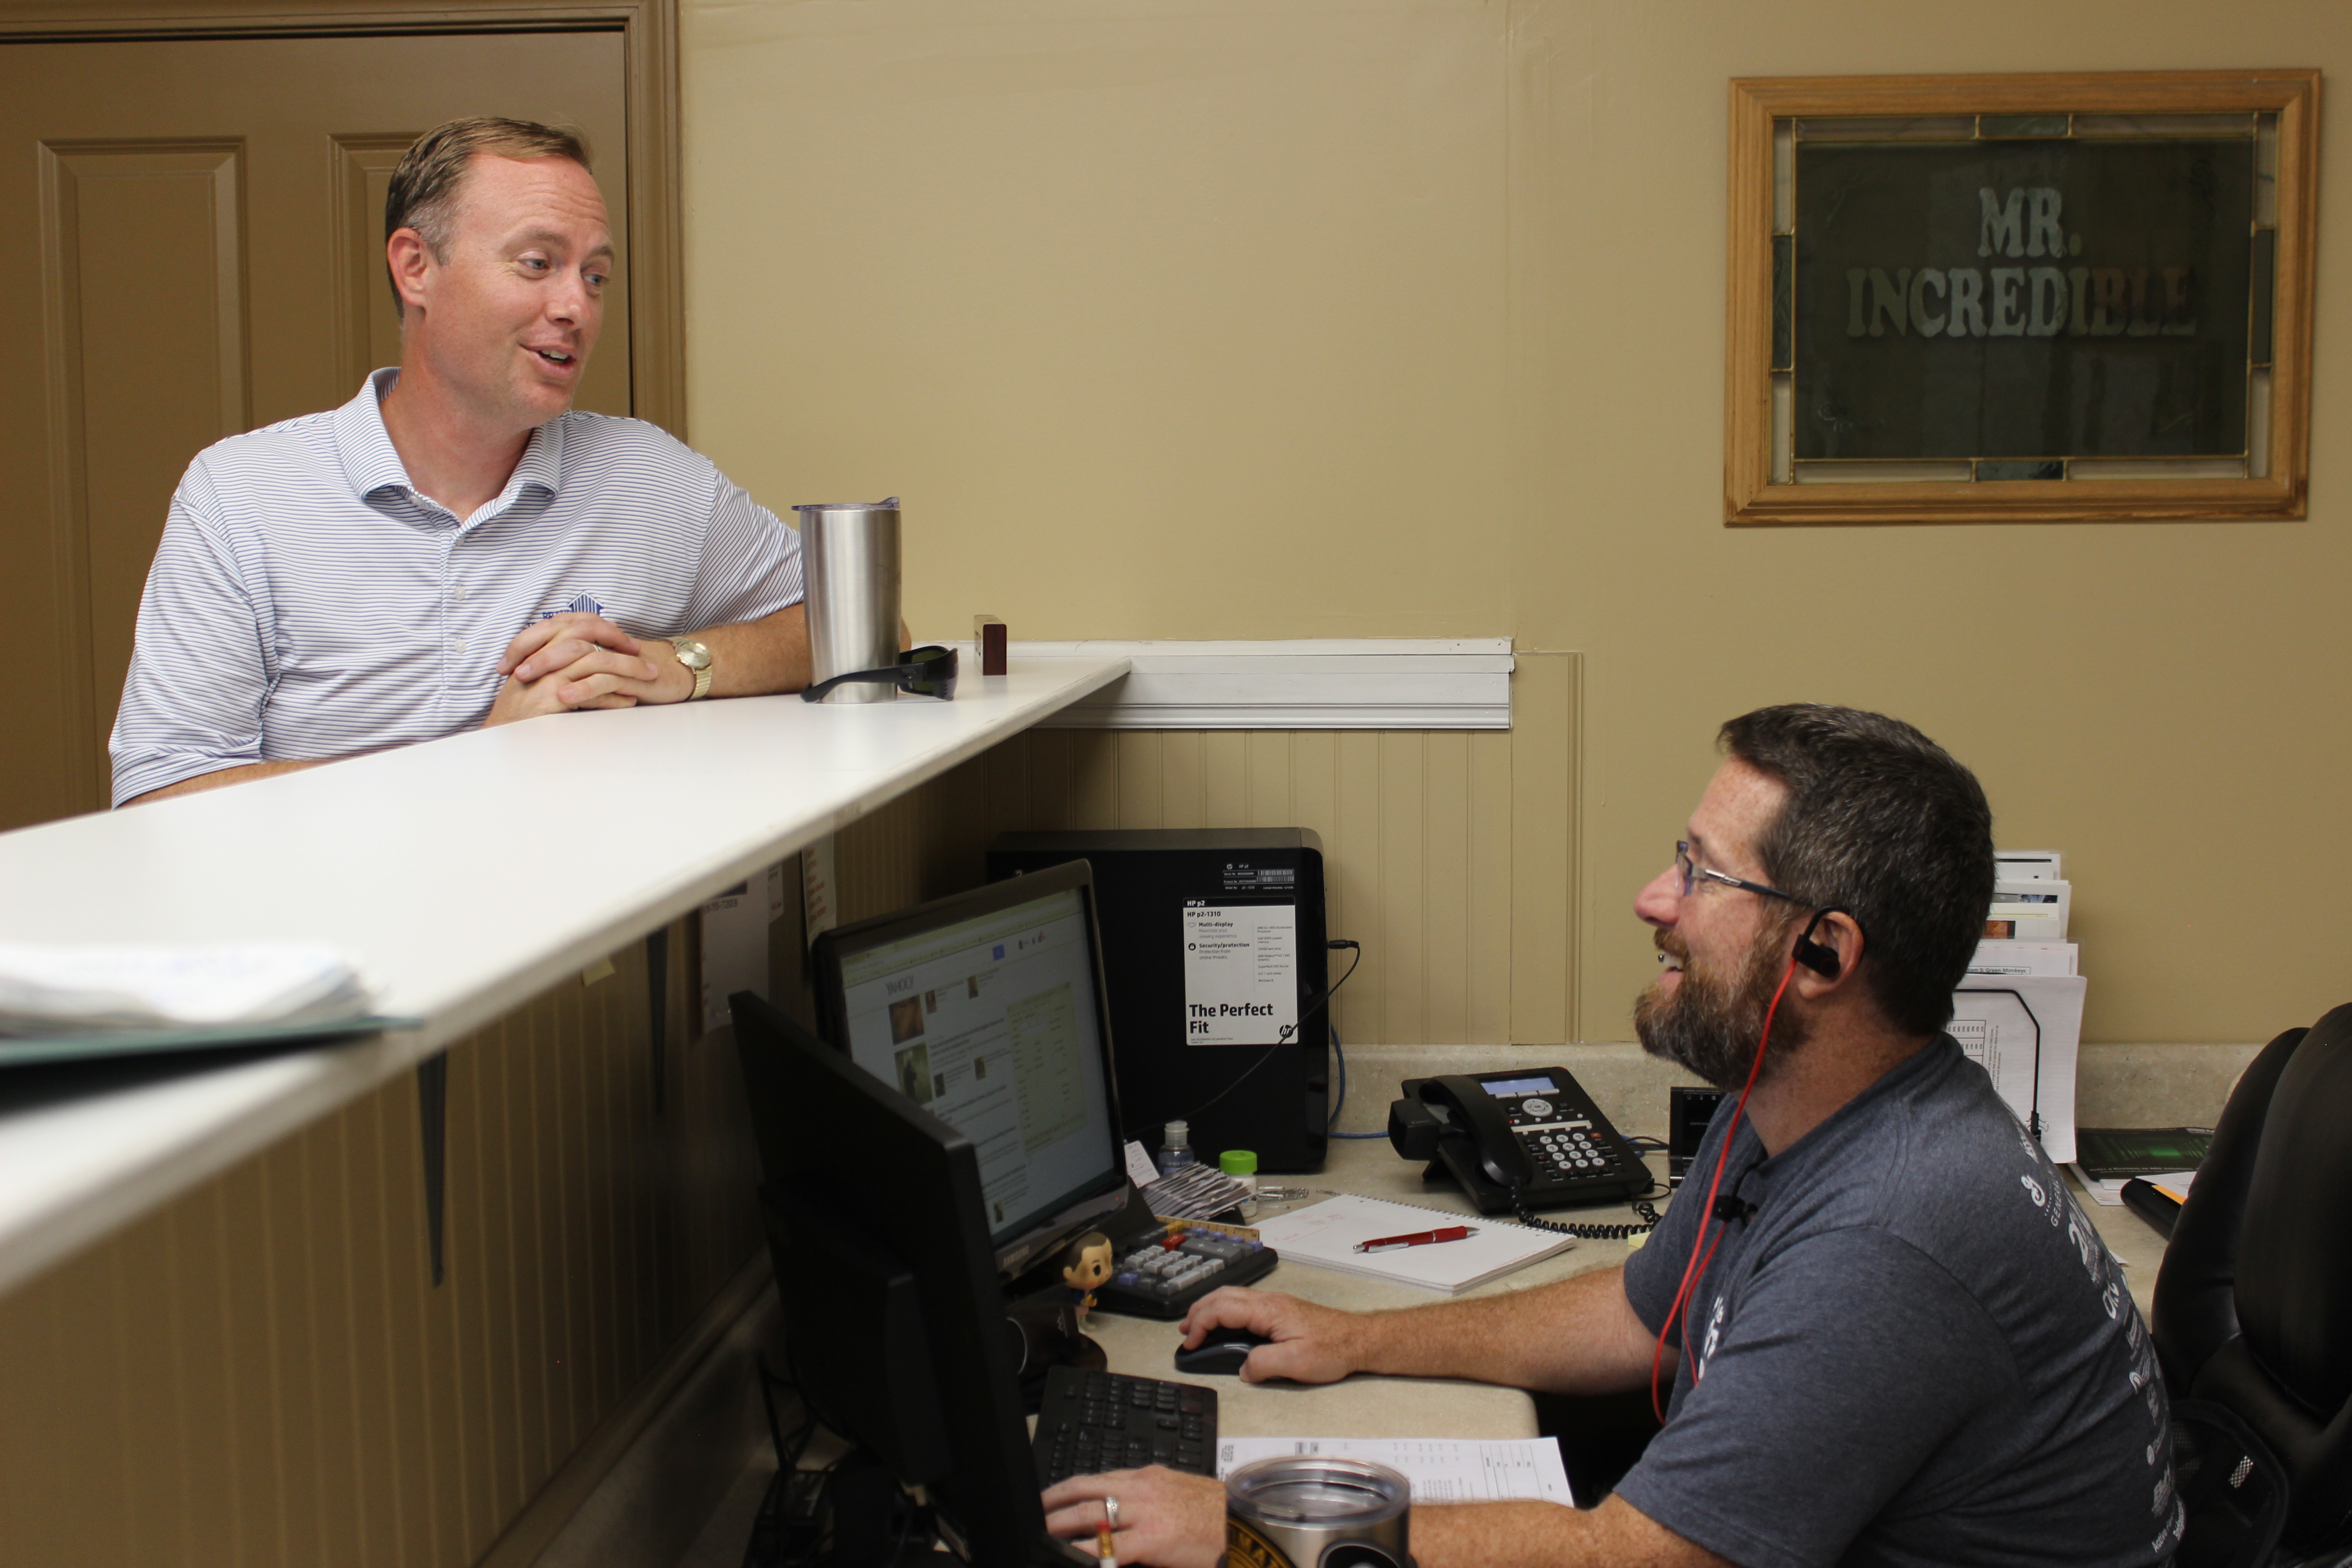 Two men talking over a desk to each other